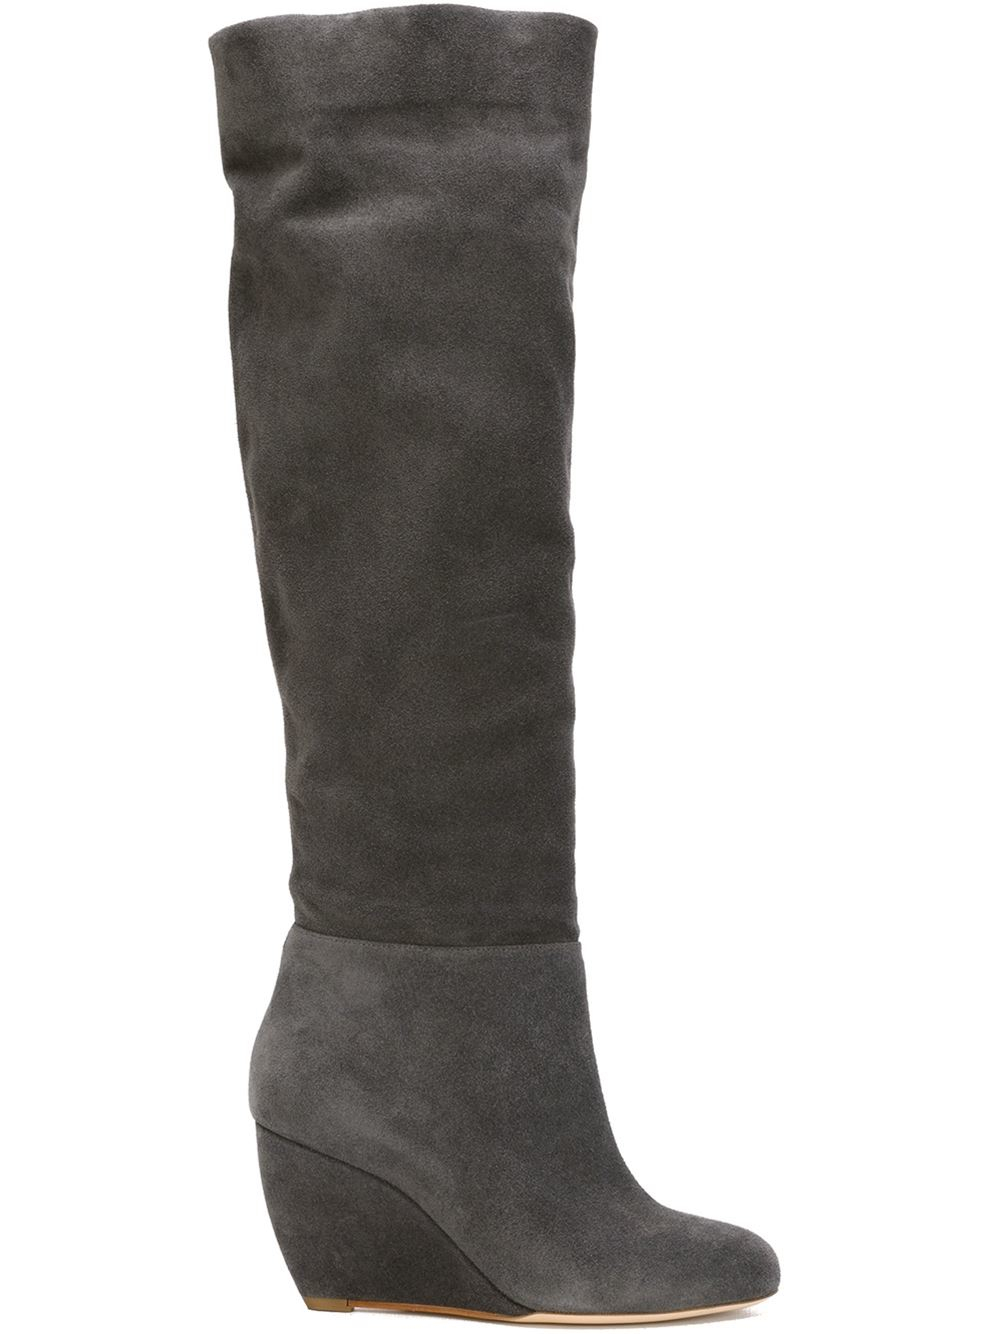 Find great deals on eBay for gray knee high boots. Shop with confidence.